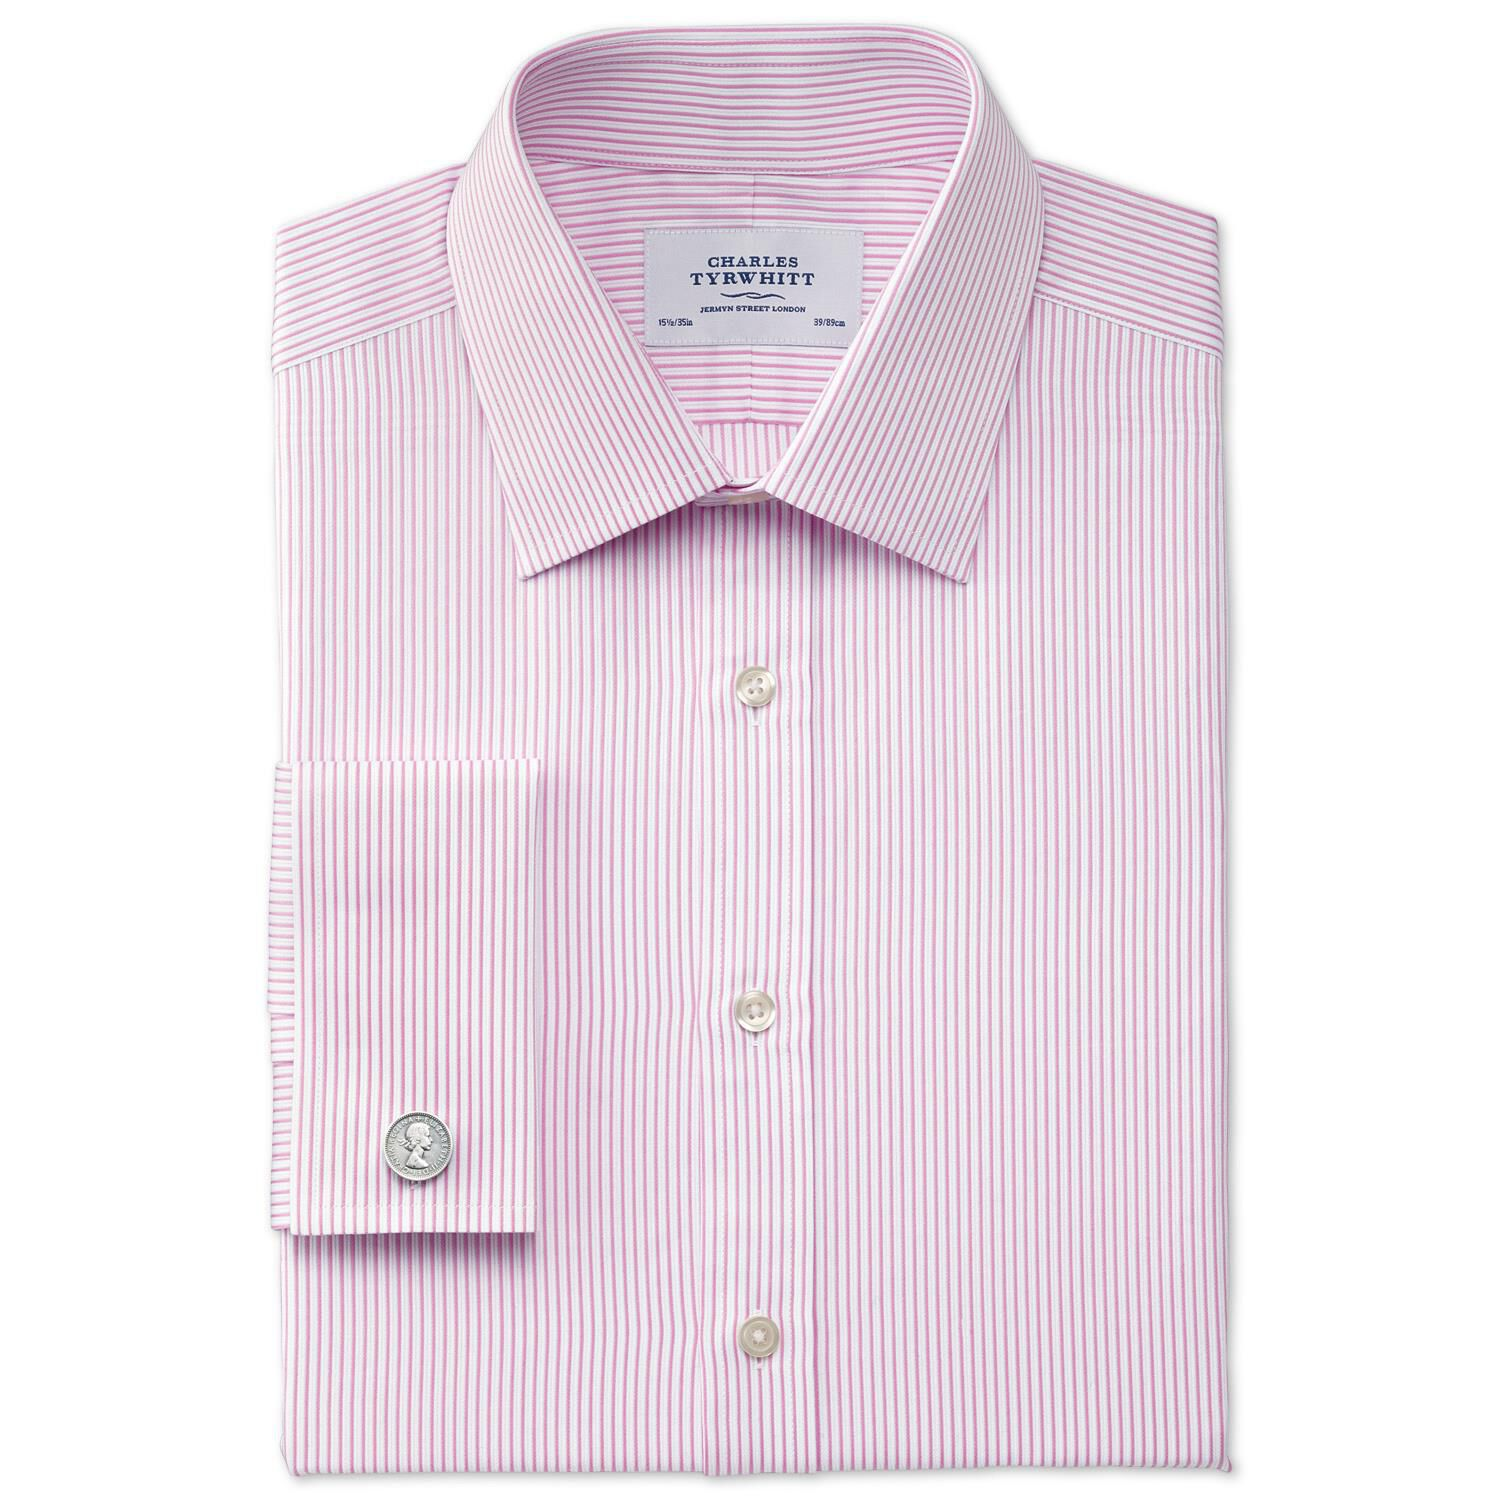 Extra Slim Fit Bedford Raised Stripe Pink Cotton Formal Shirt Single Cuff Size 15.5/37 by Charles Ty